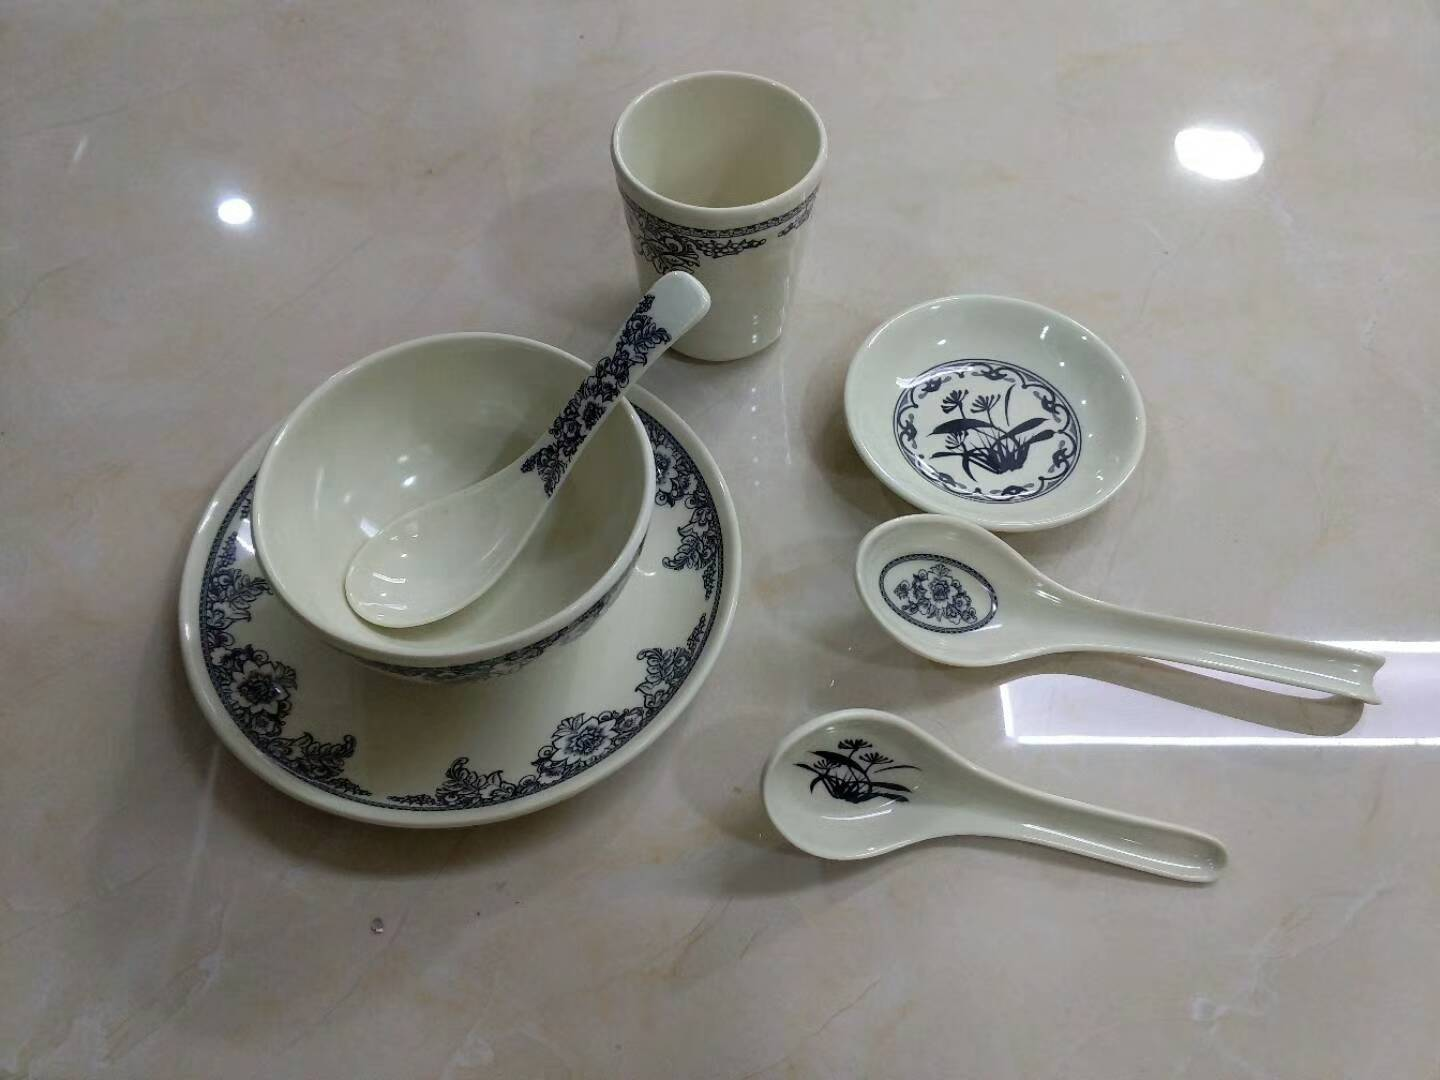 Melamine tableware should be replaced when there is a crack